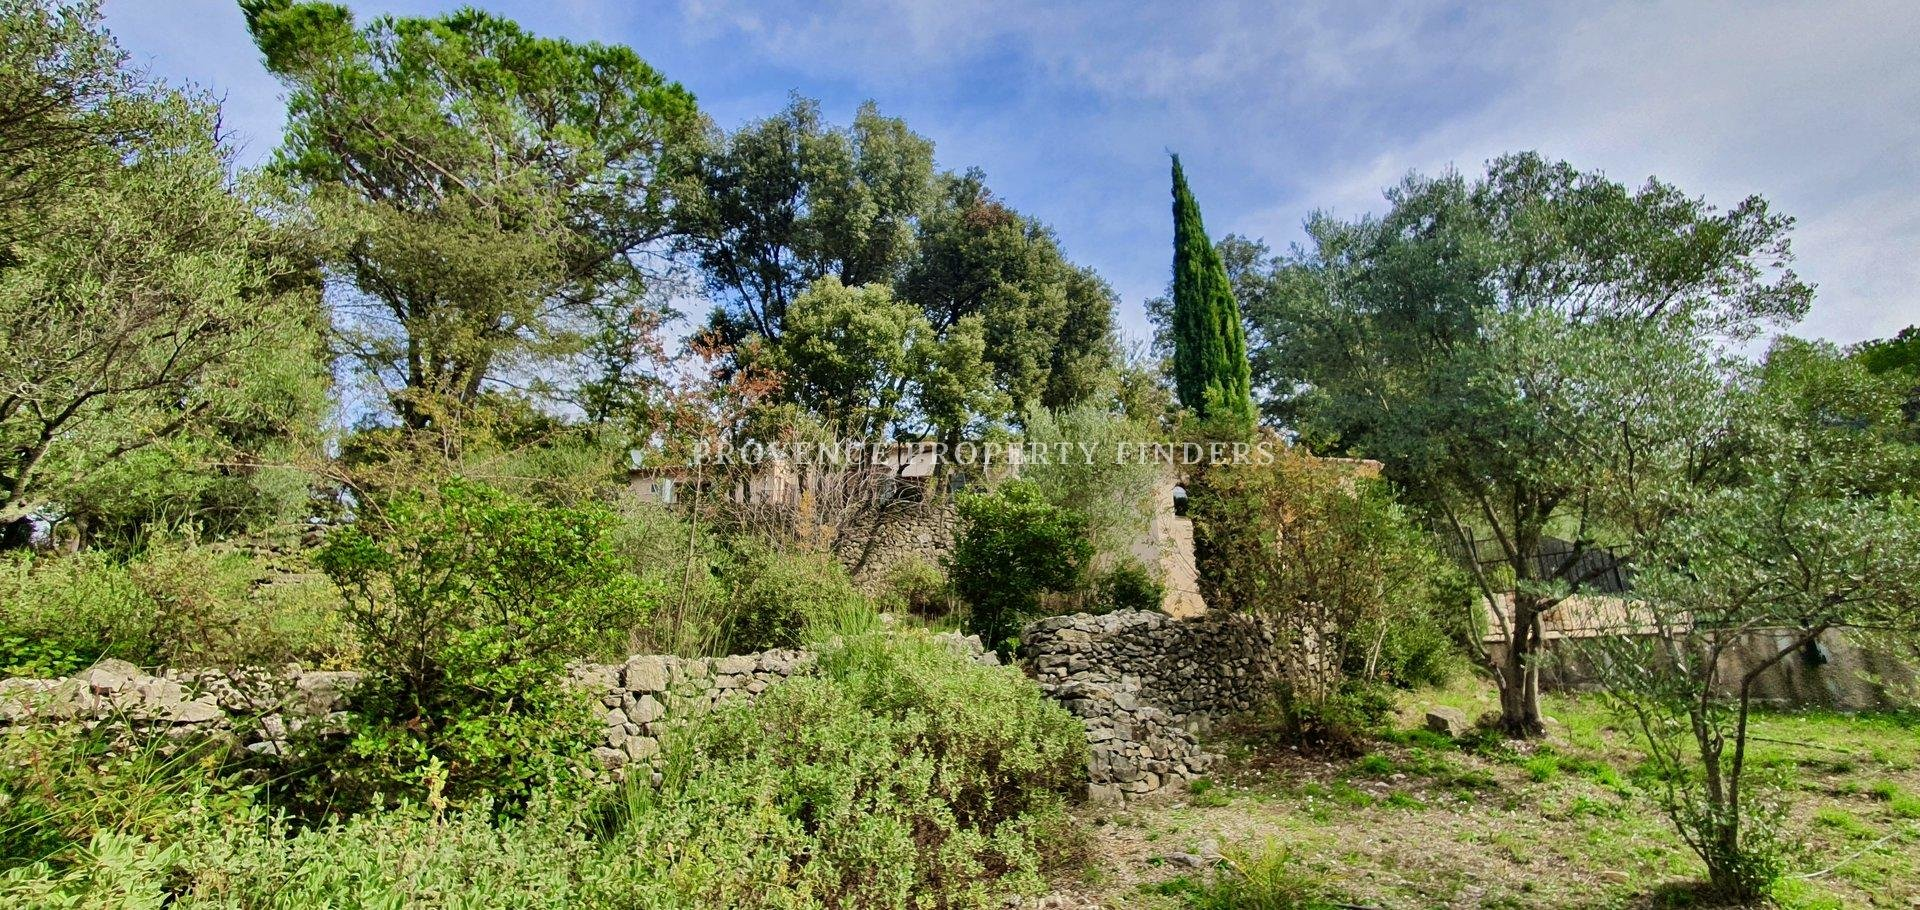 Wonderful home, lots of potential, 6 bedrooms, swimming pool, lovely views.